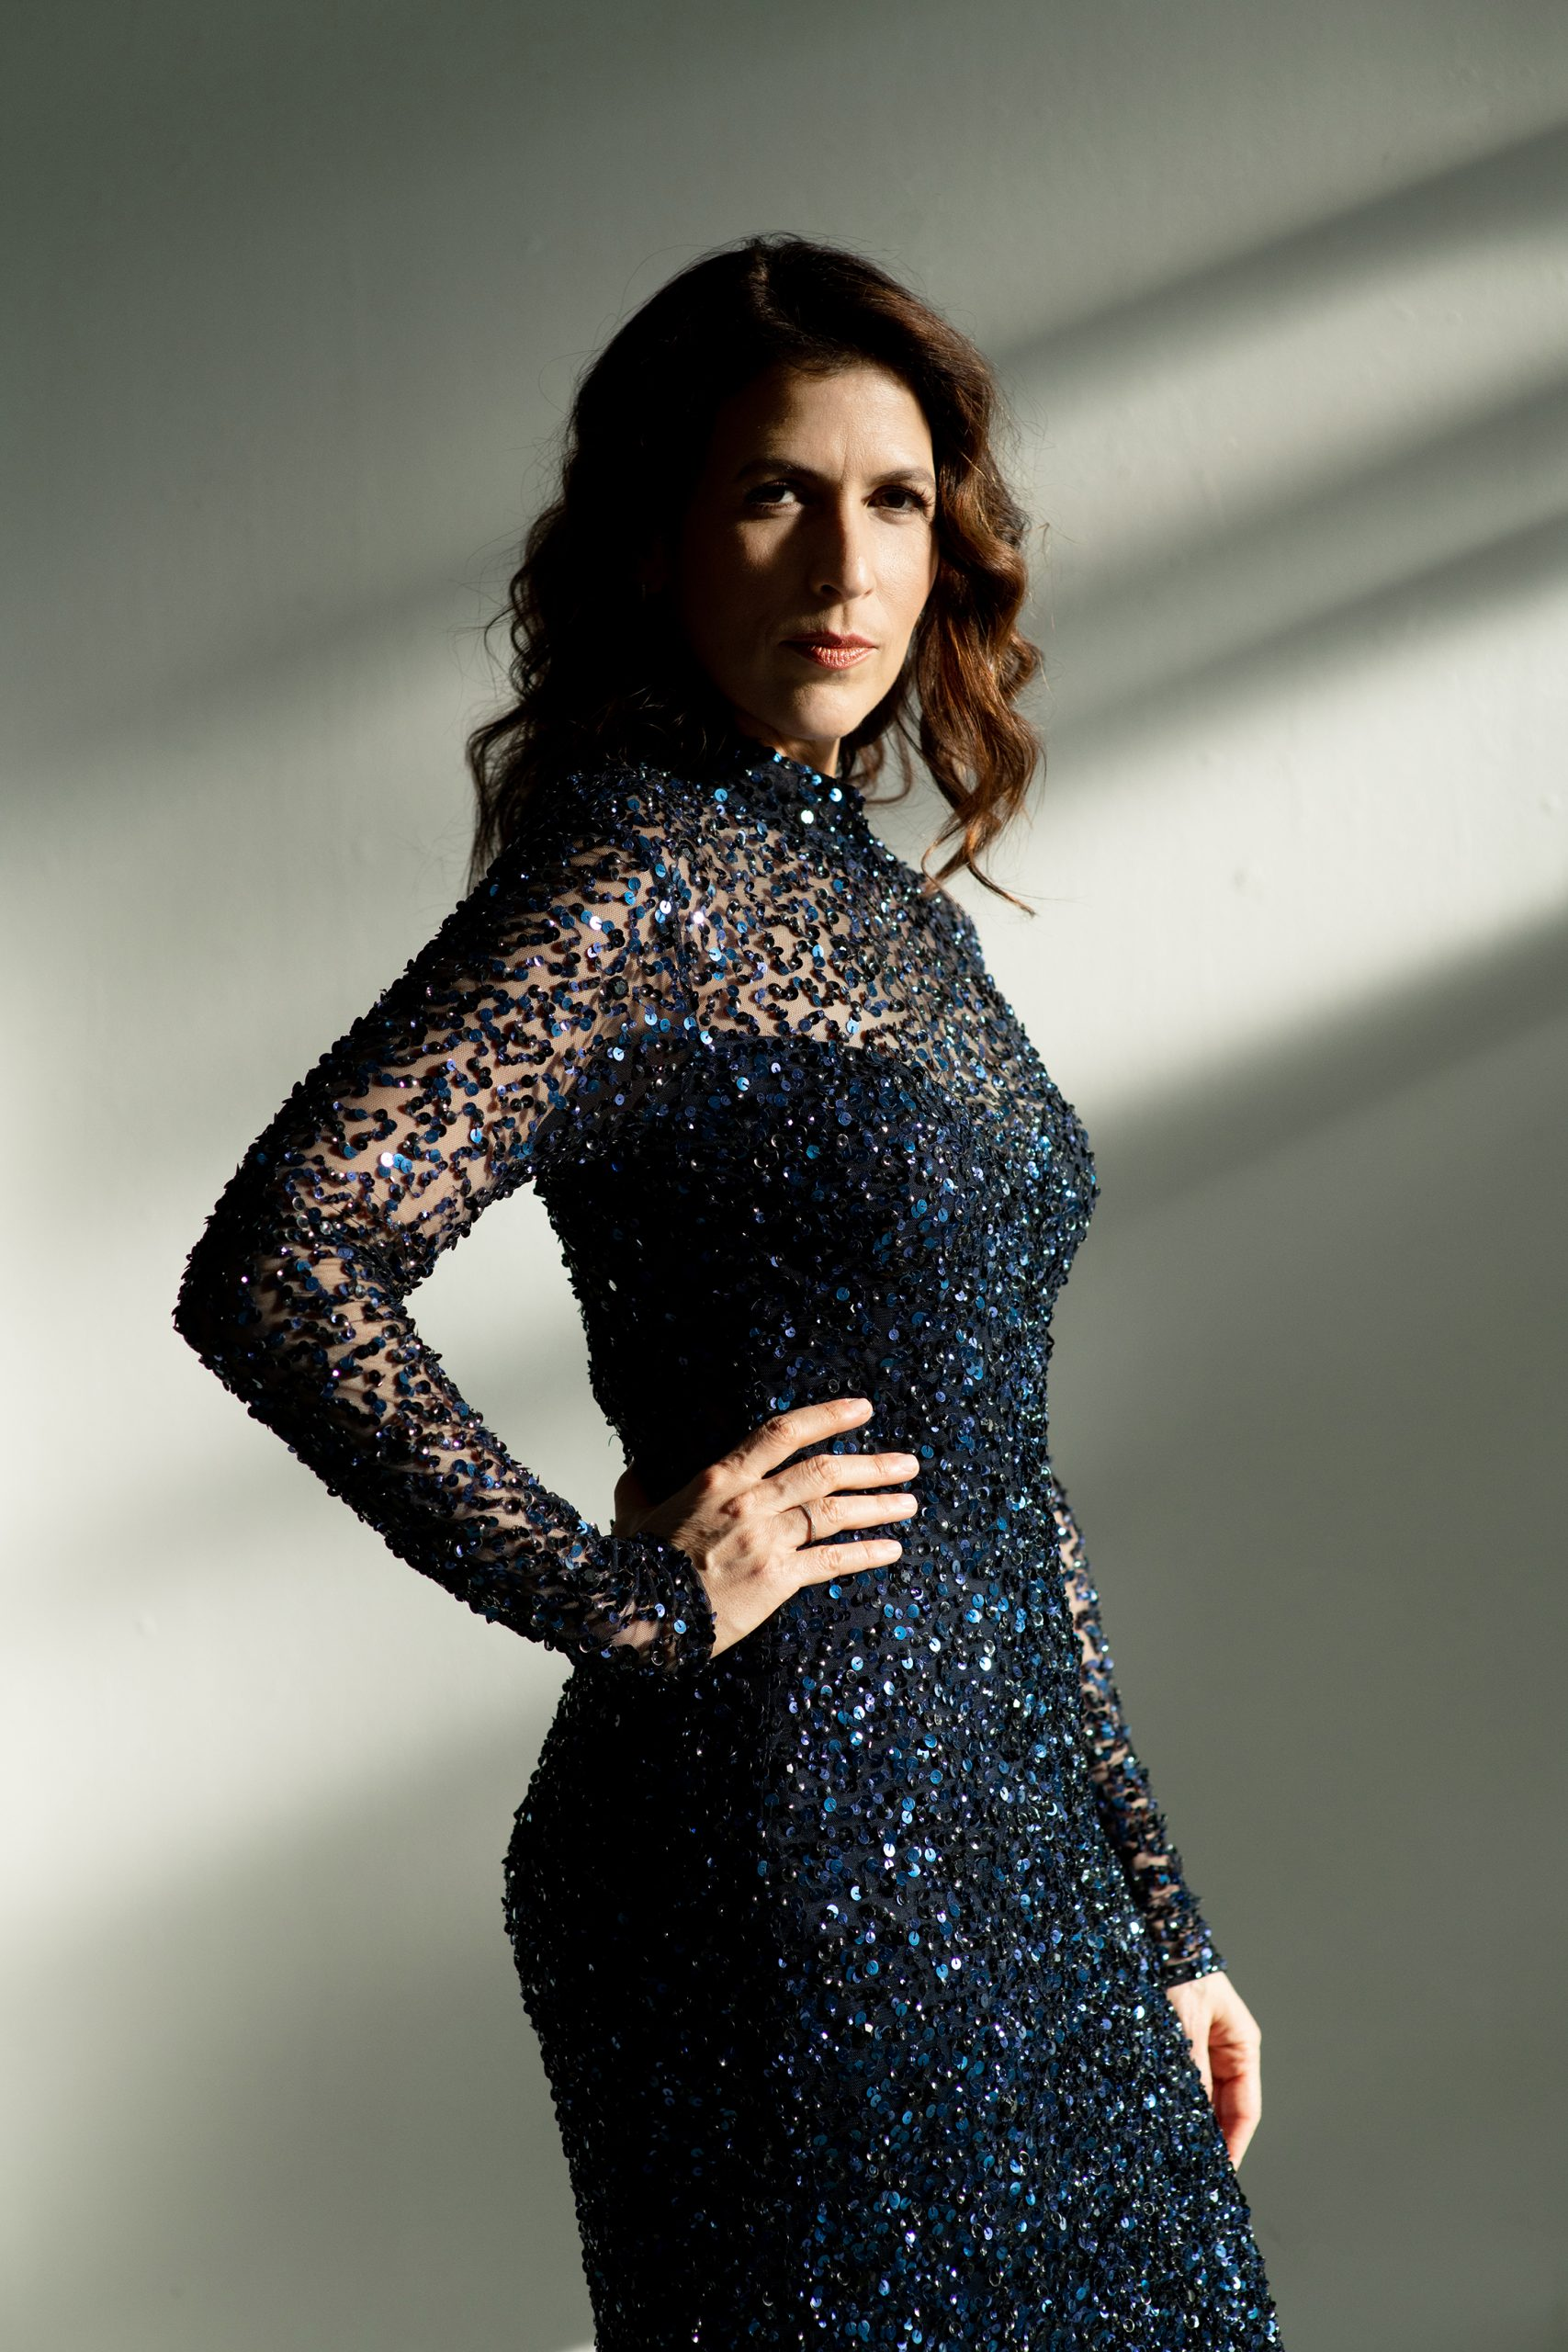 Inbal Segev stands against a white and grey background wearing a blue sequined dress, looking serious with her hand on her hip.